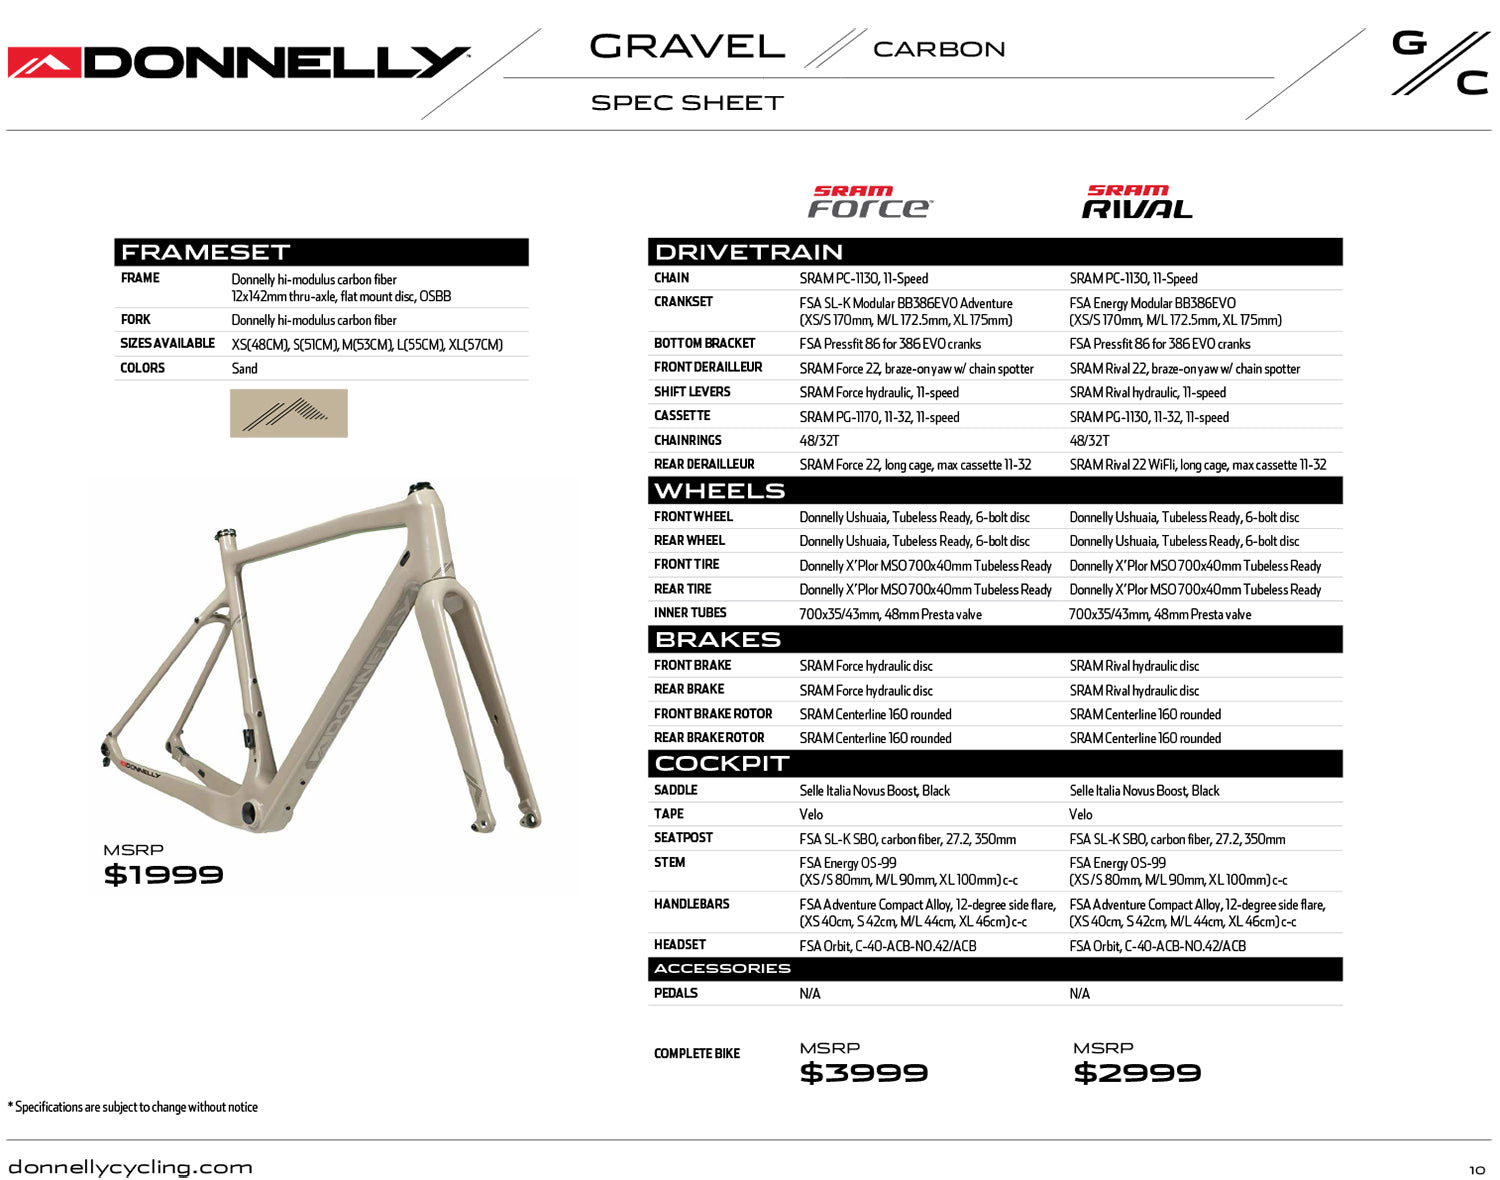 Donnelly GC Gravel Bike Frame